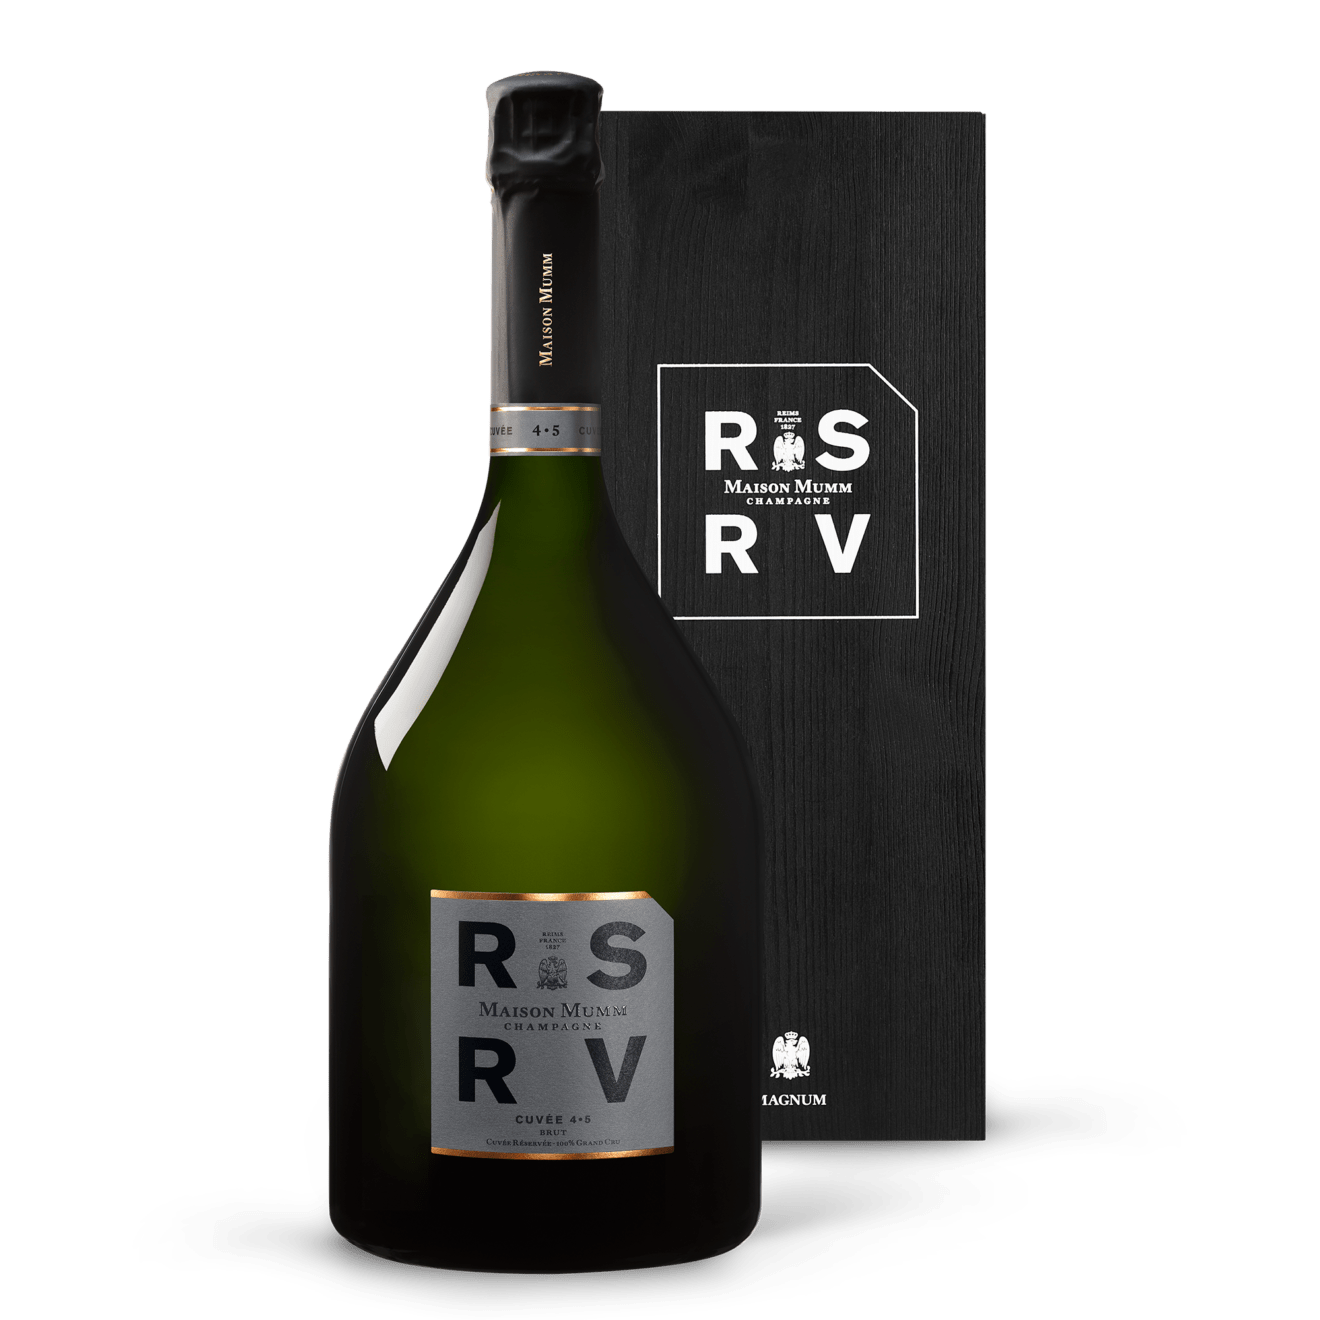 RSRV-4.5-150cl-packshot2